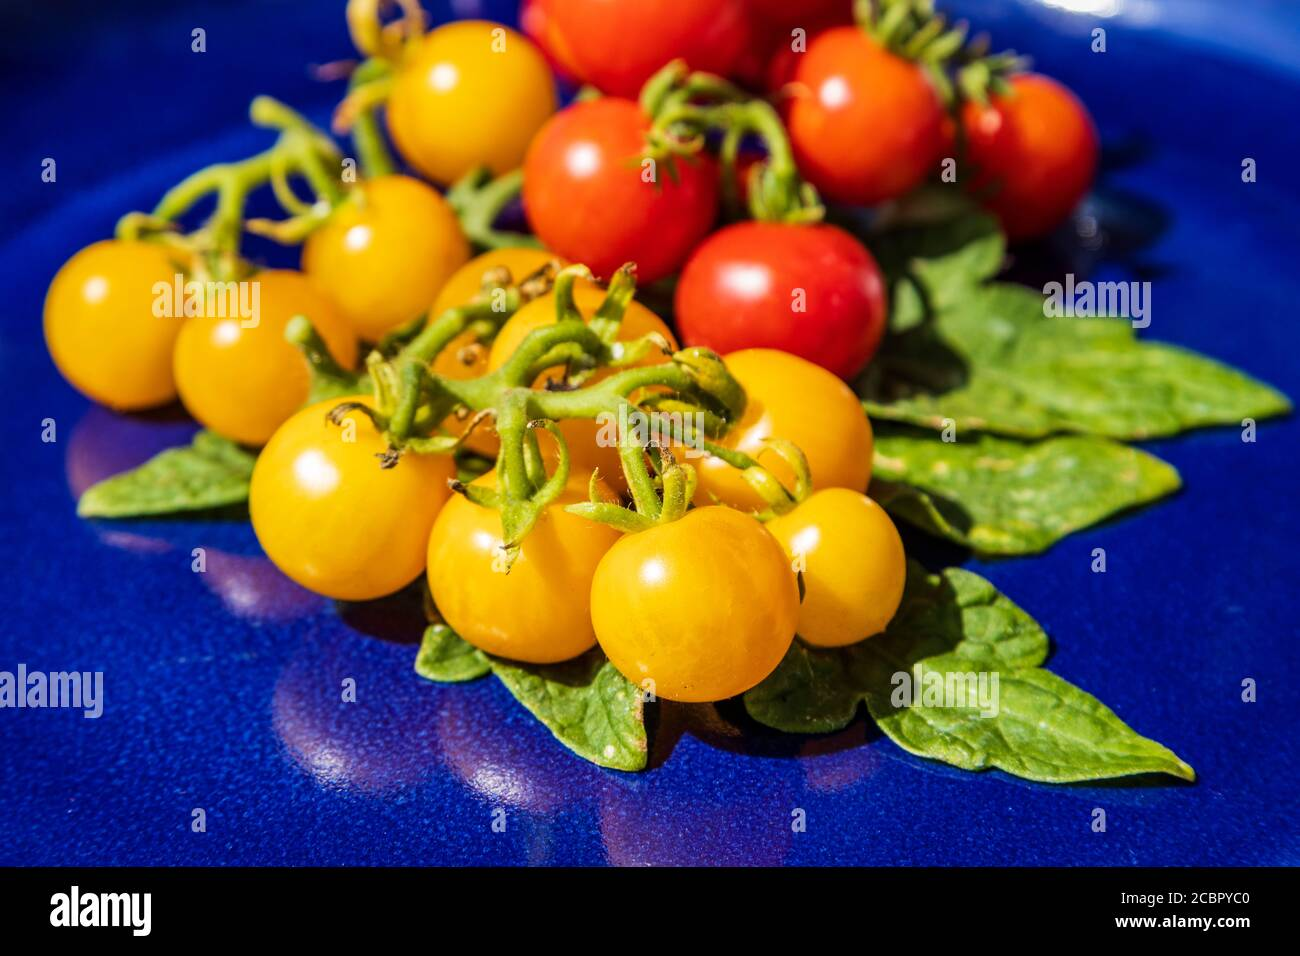 fresh-yellow-and-red-organic-cherry-tomatoes-on-a-blue-plate-with-leaves-2CBPYC0.jpg